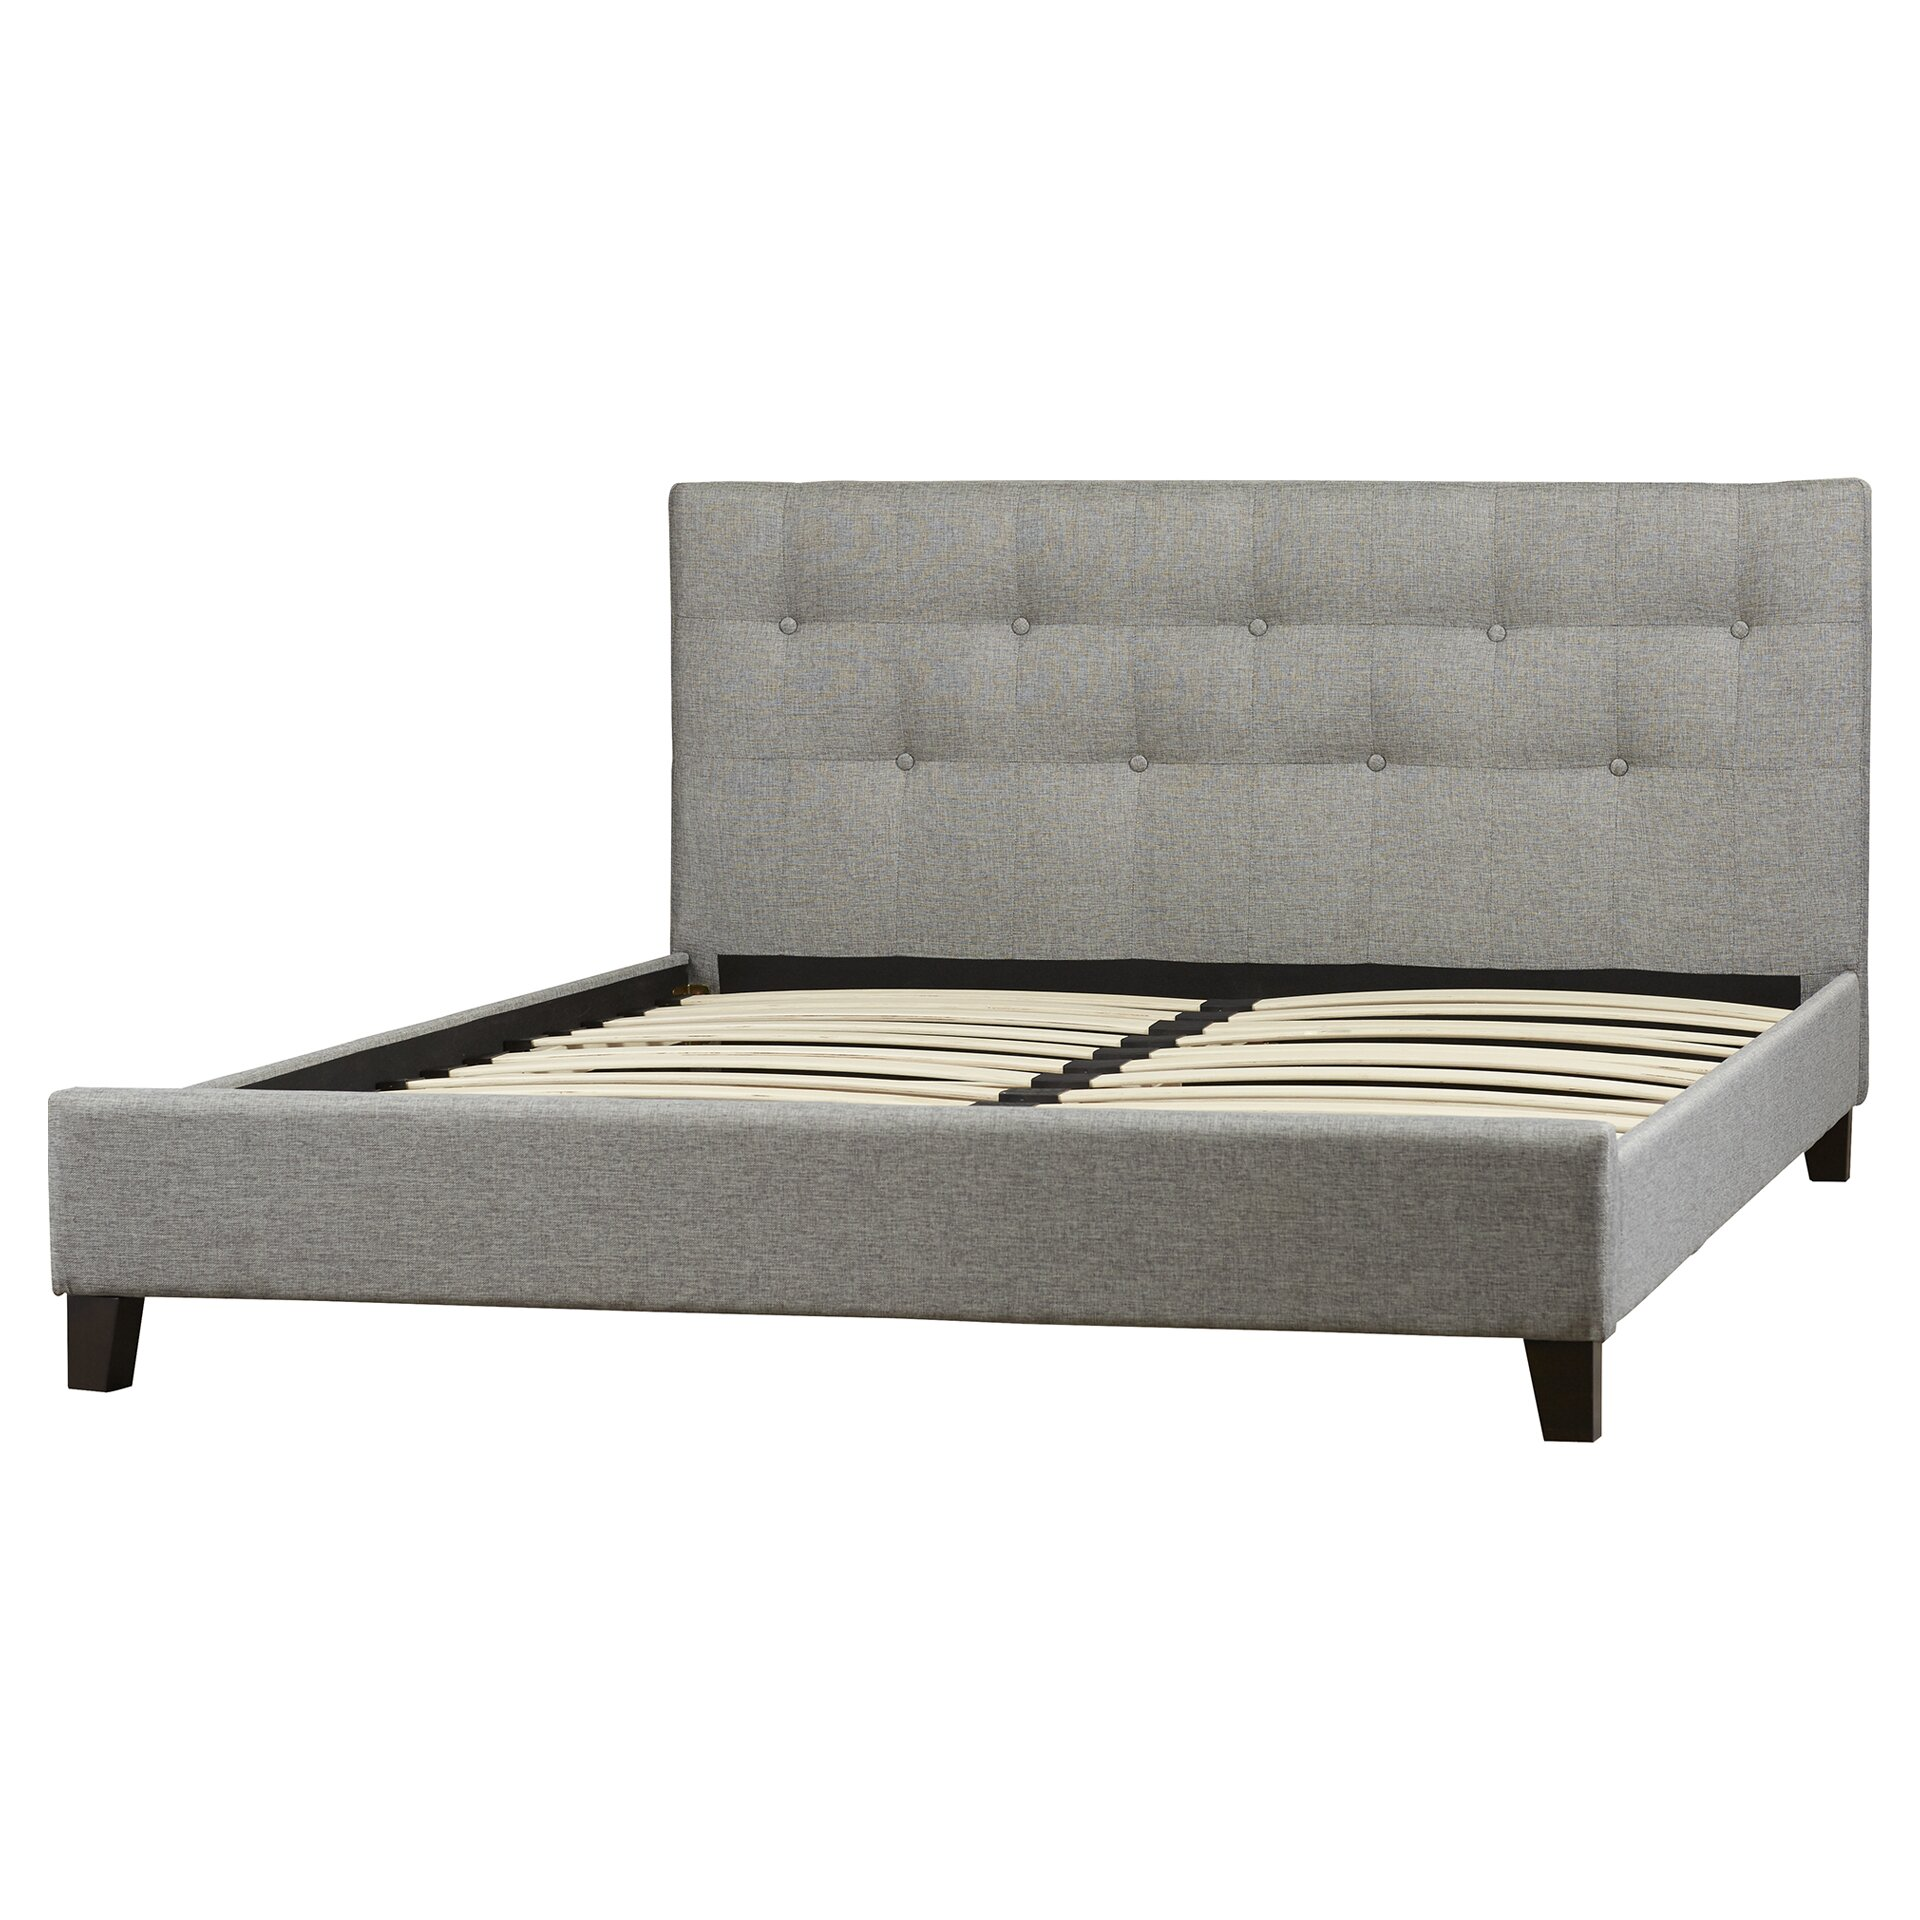 Upholstered Platform Bed : ... of Hampton Blanchett Upholstered Platform Bed & Reviews  Wayfair